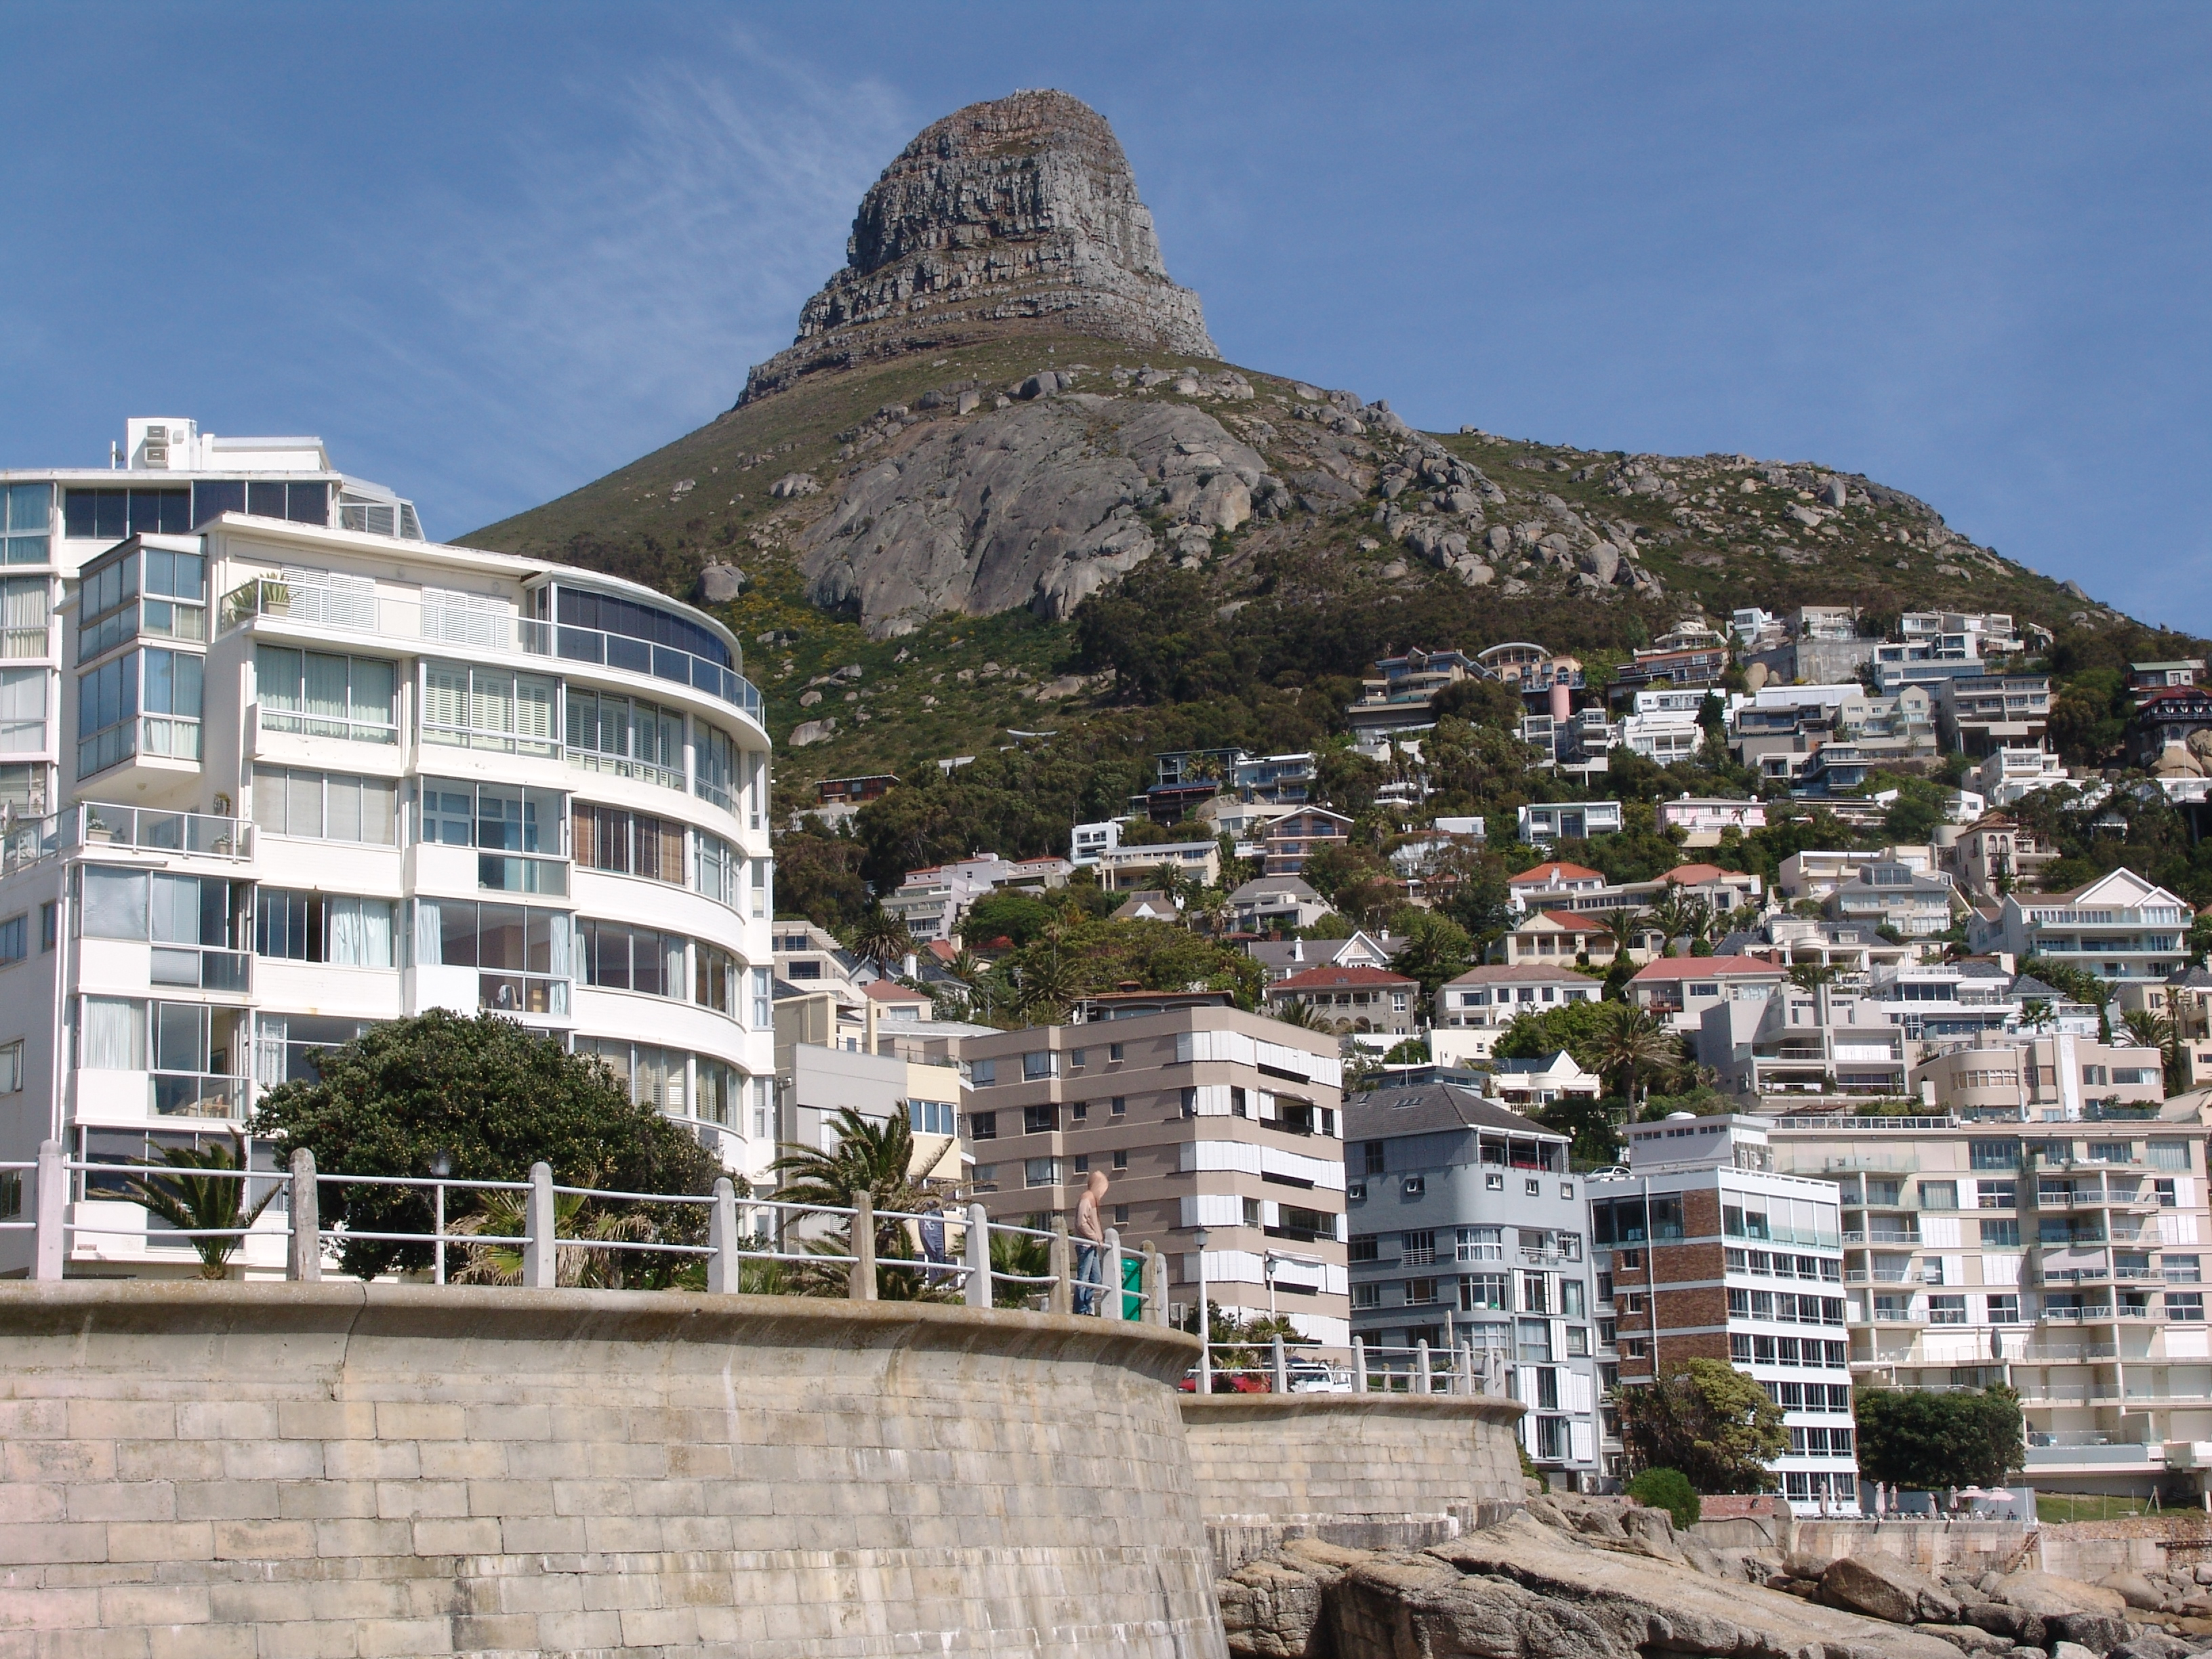 Lions Head With The Bantry Bay Promenade In Foreground